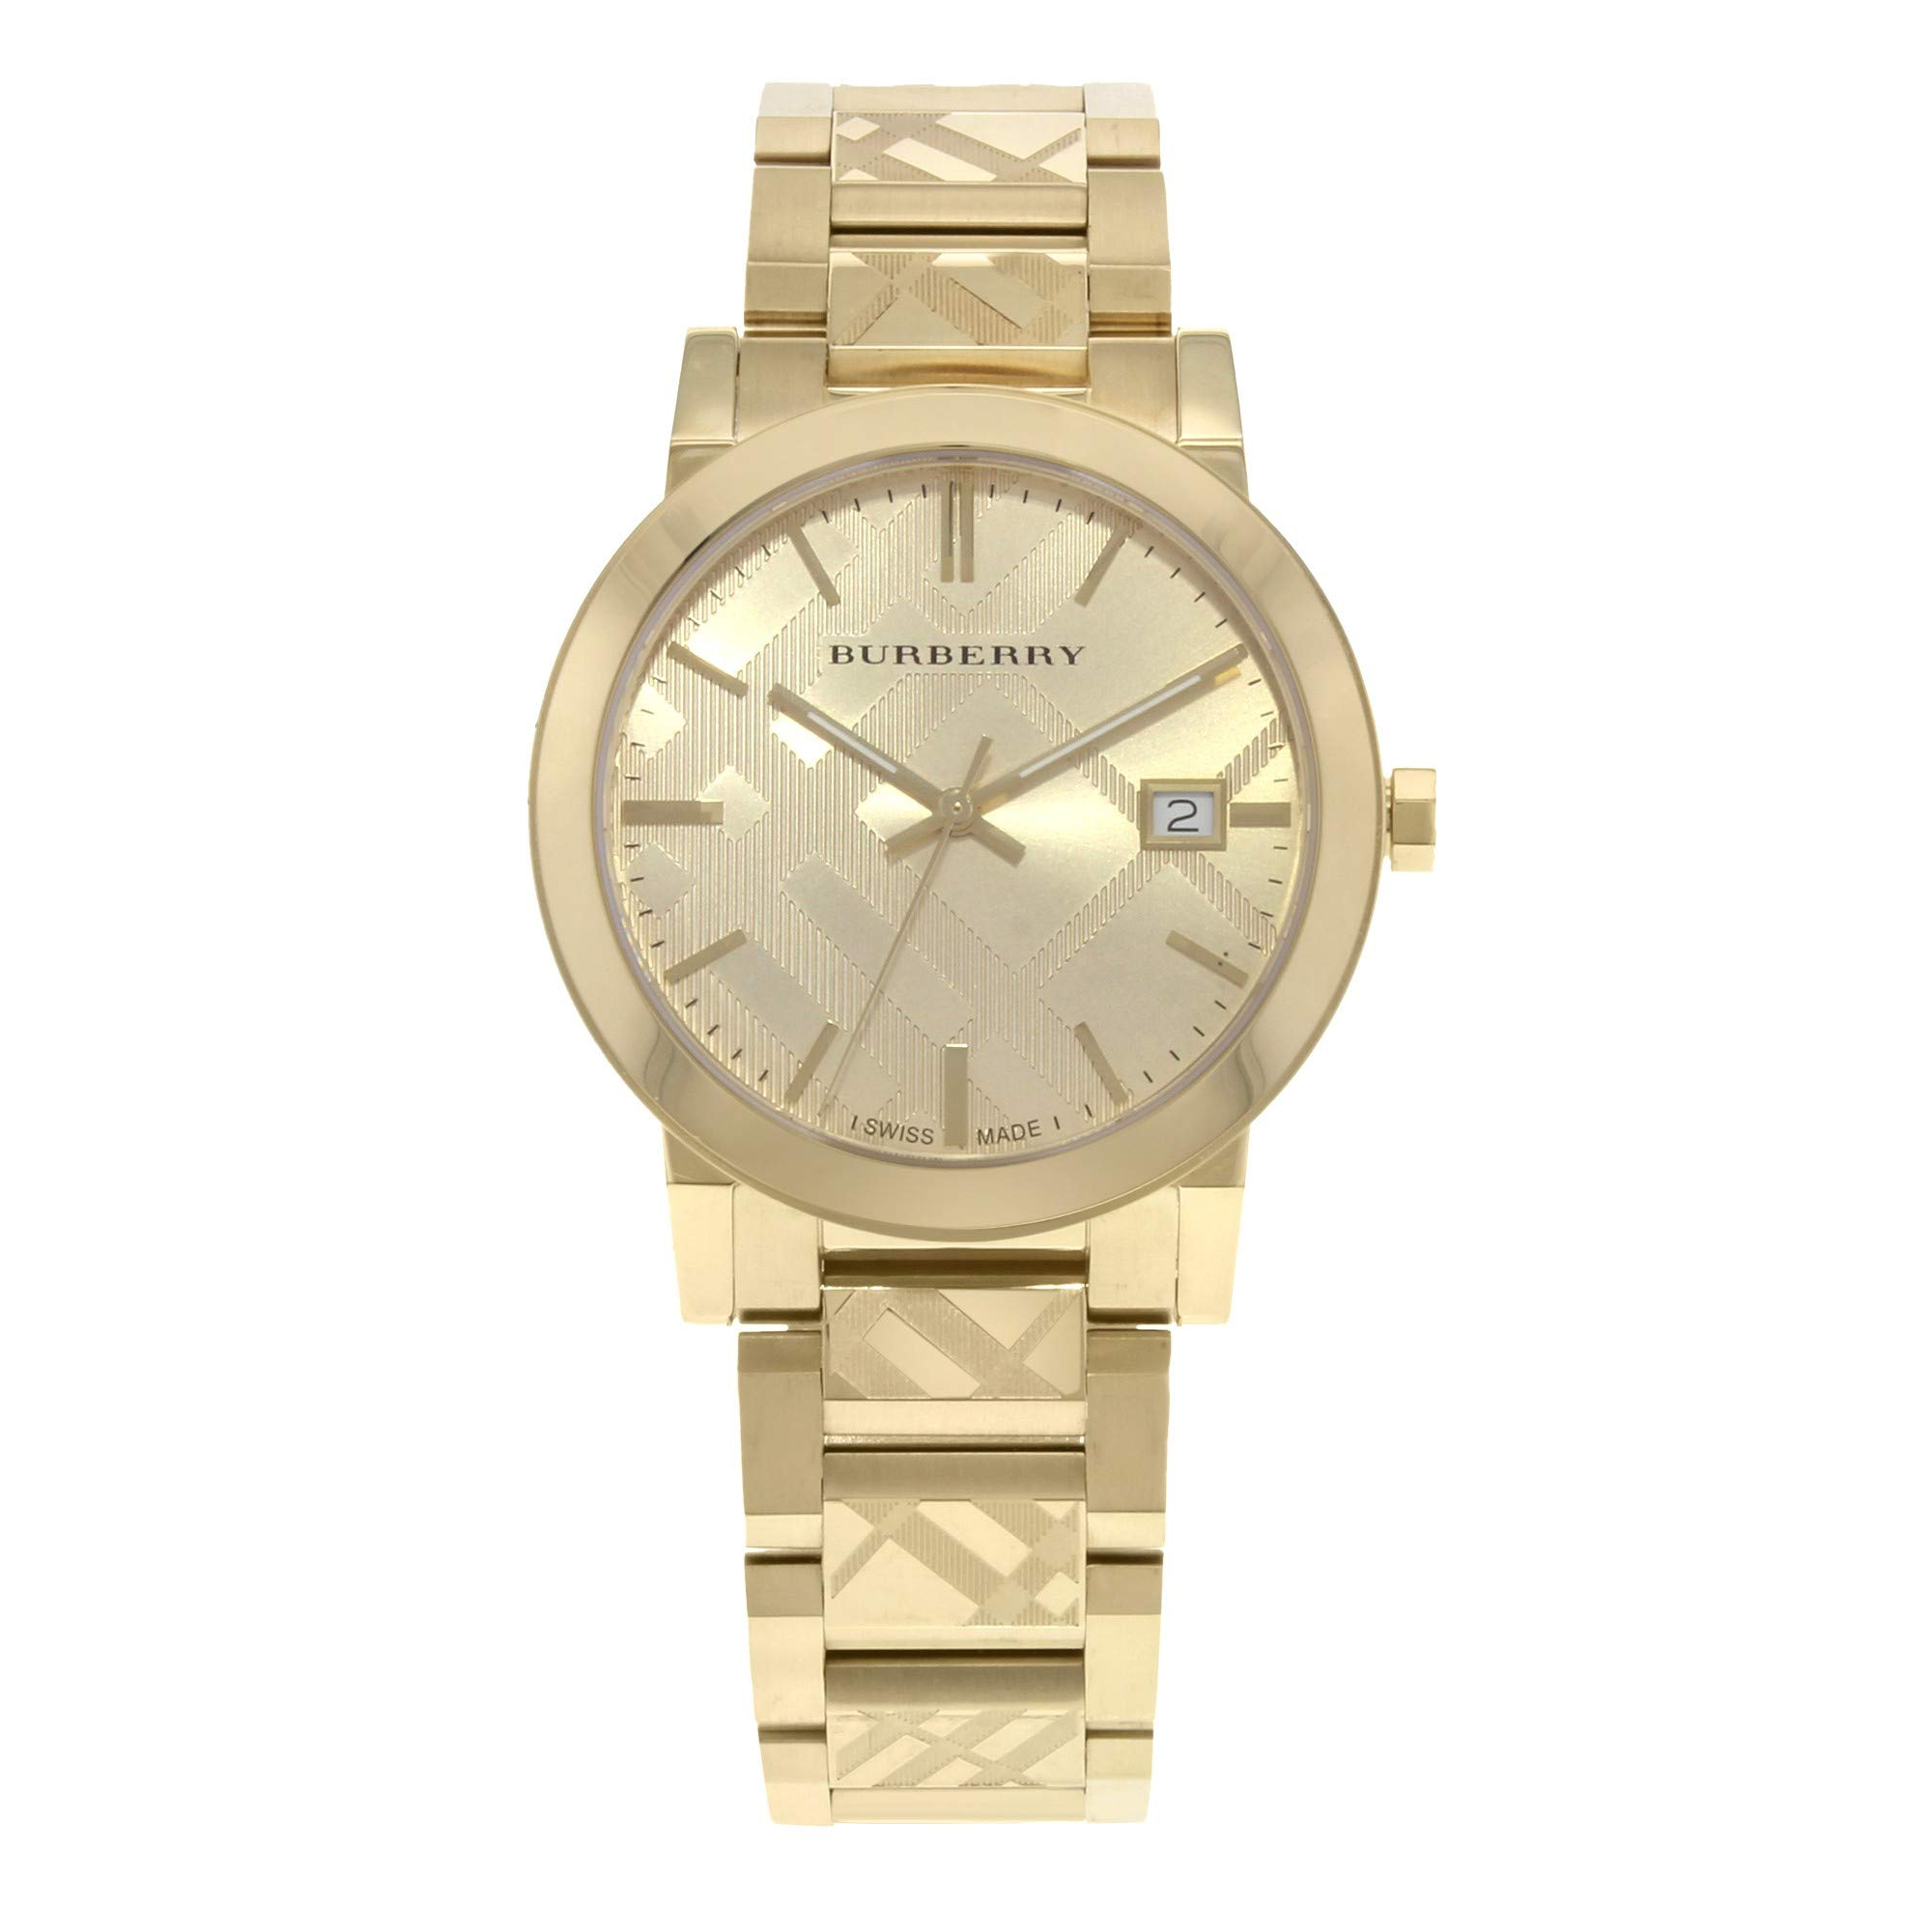 Burberry The City Quartz Male Watch BU9038 (Certified Pre-Owned)